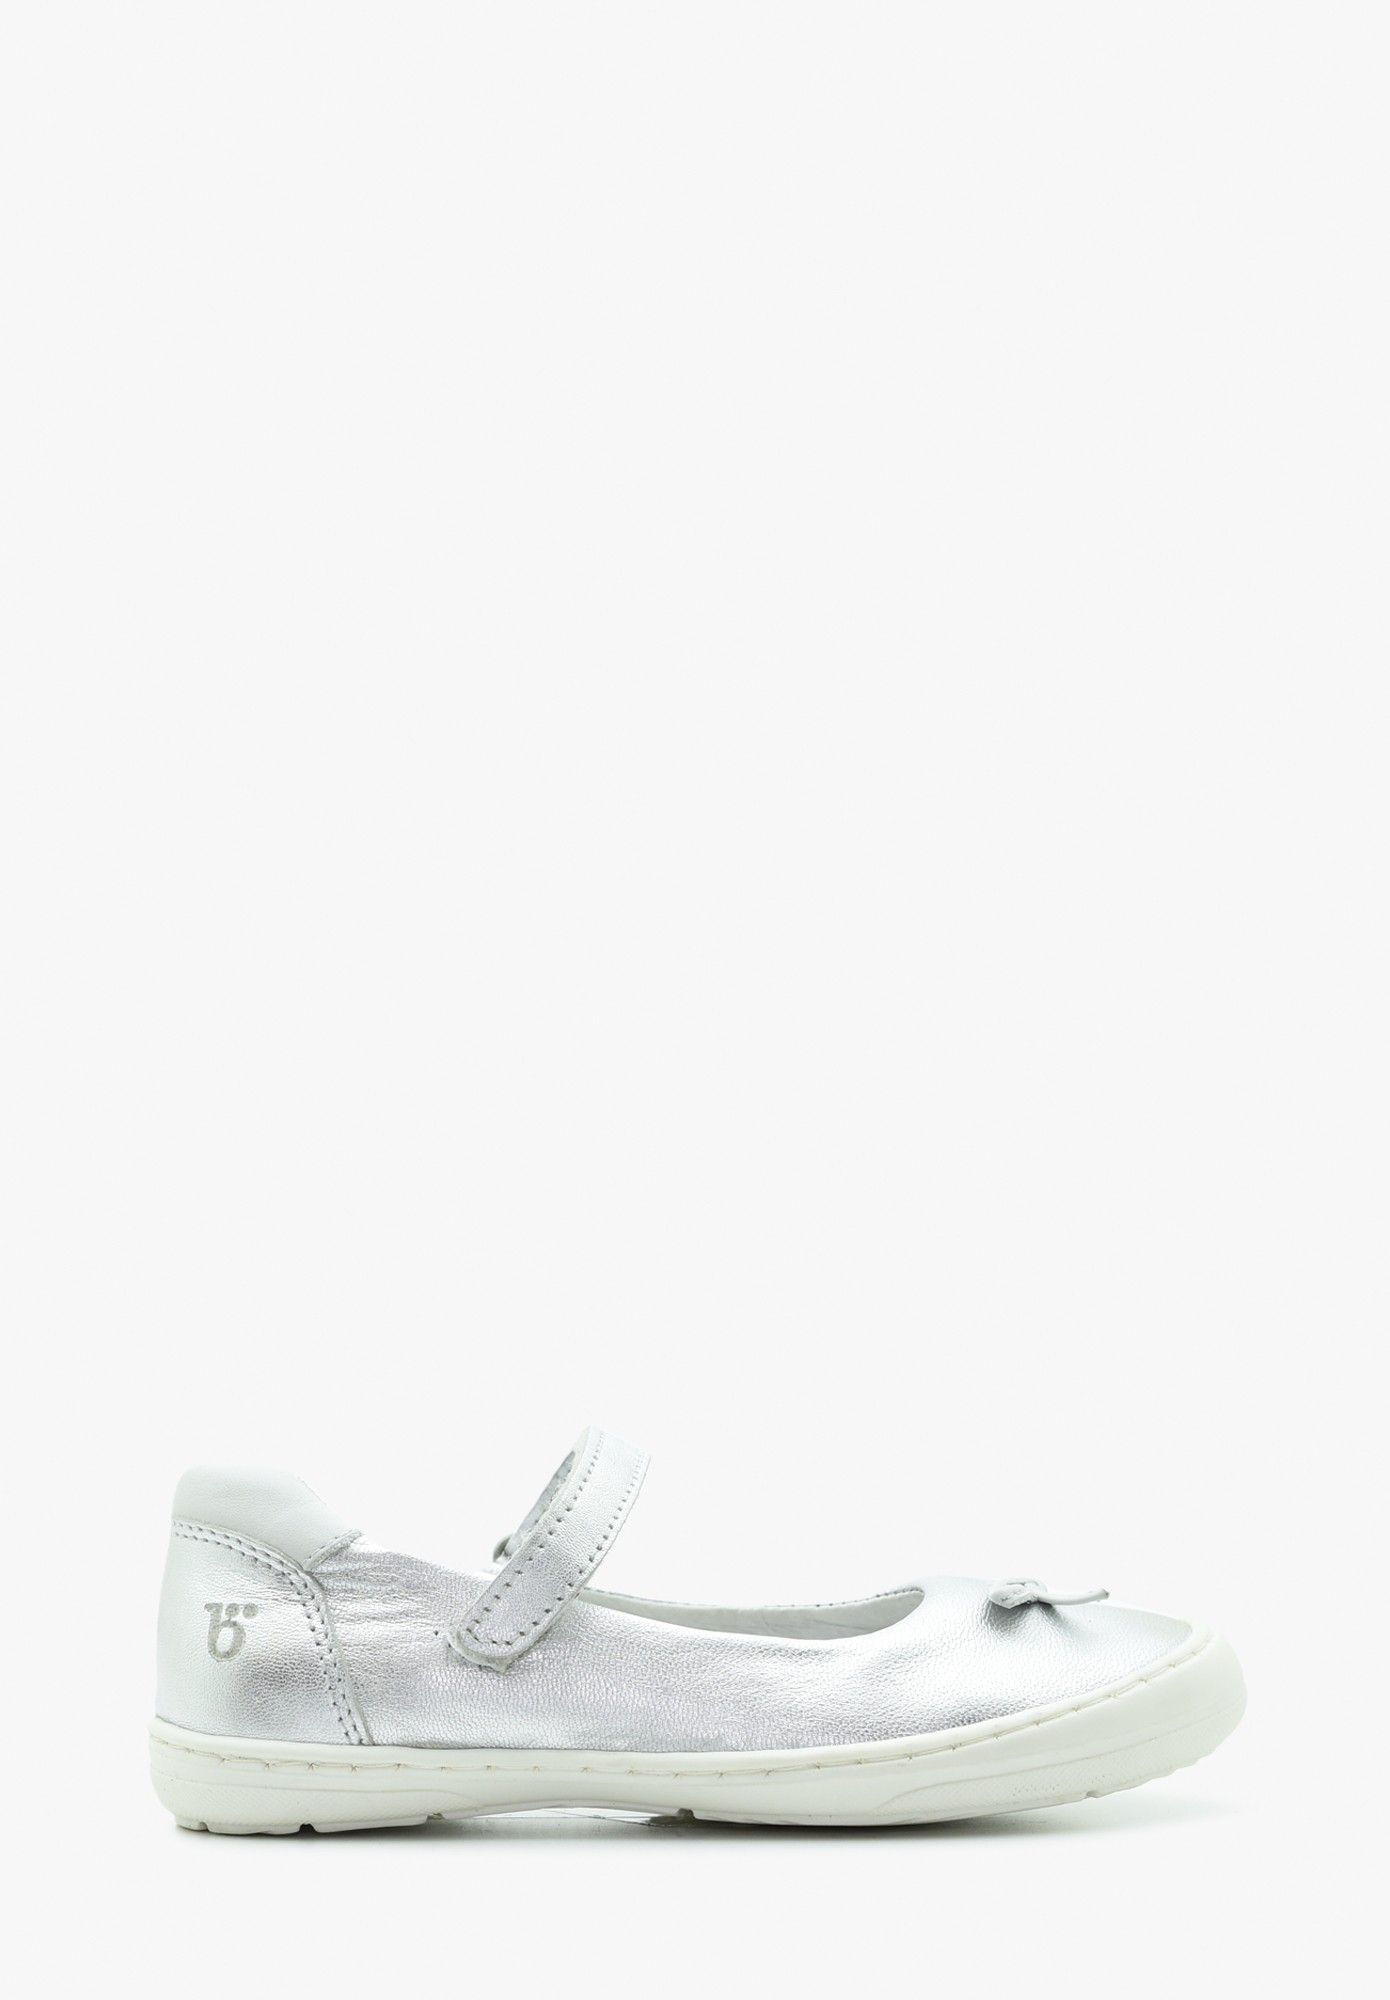 Kids' shoes - Ballerina - Girl